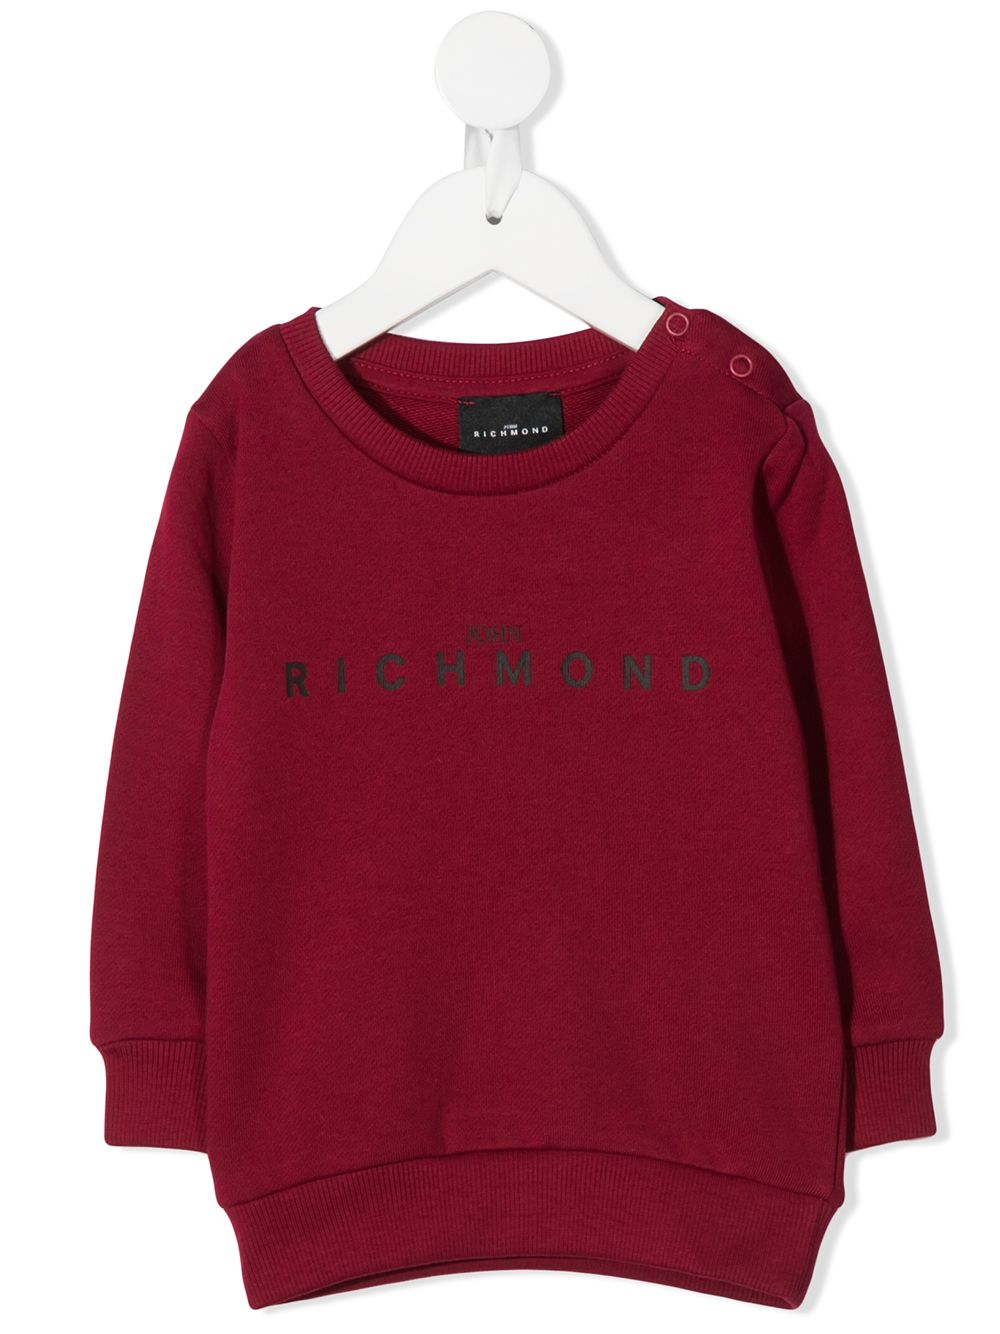 john richmond | Sweatshirt | RIA20011FET5W0487